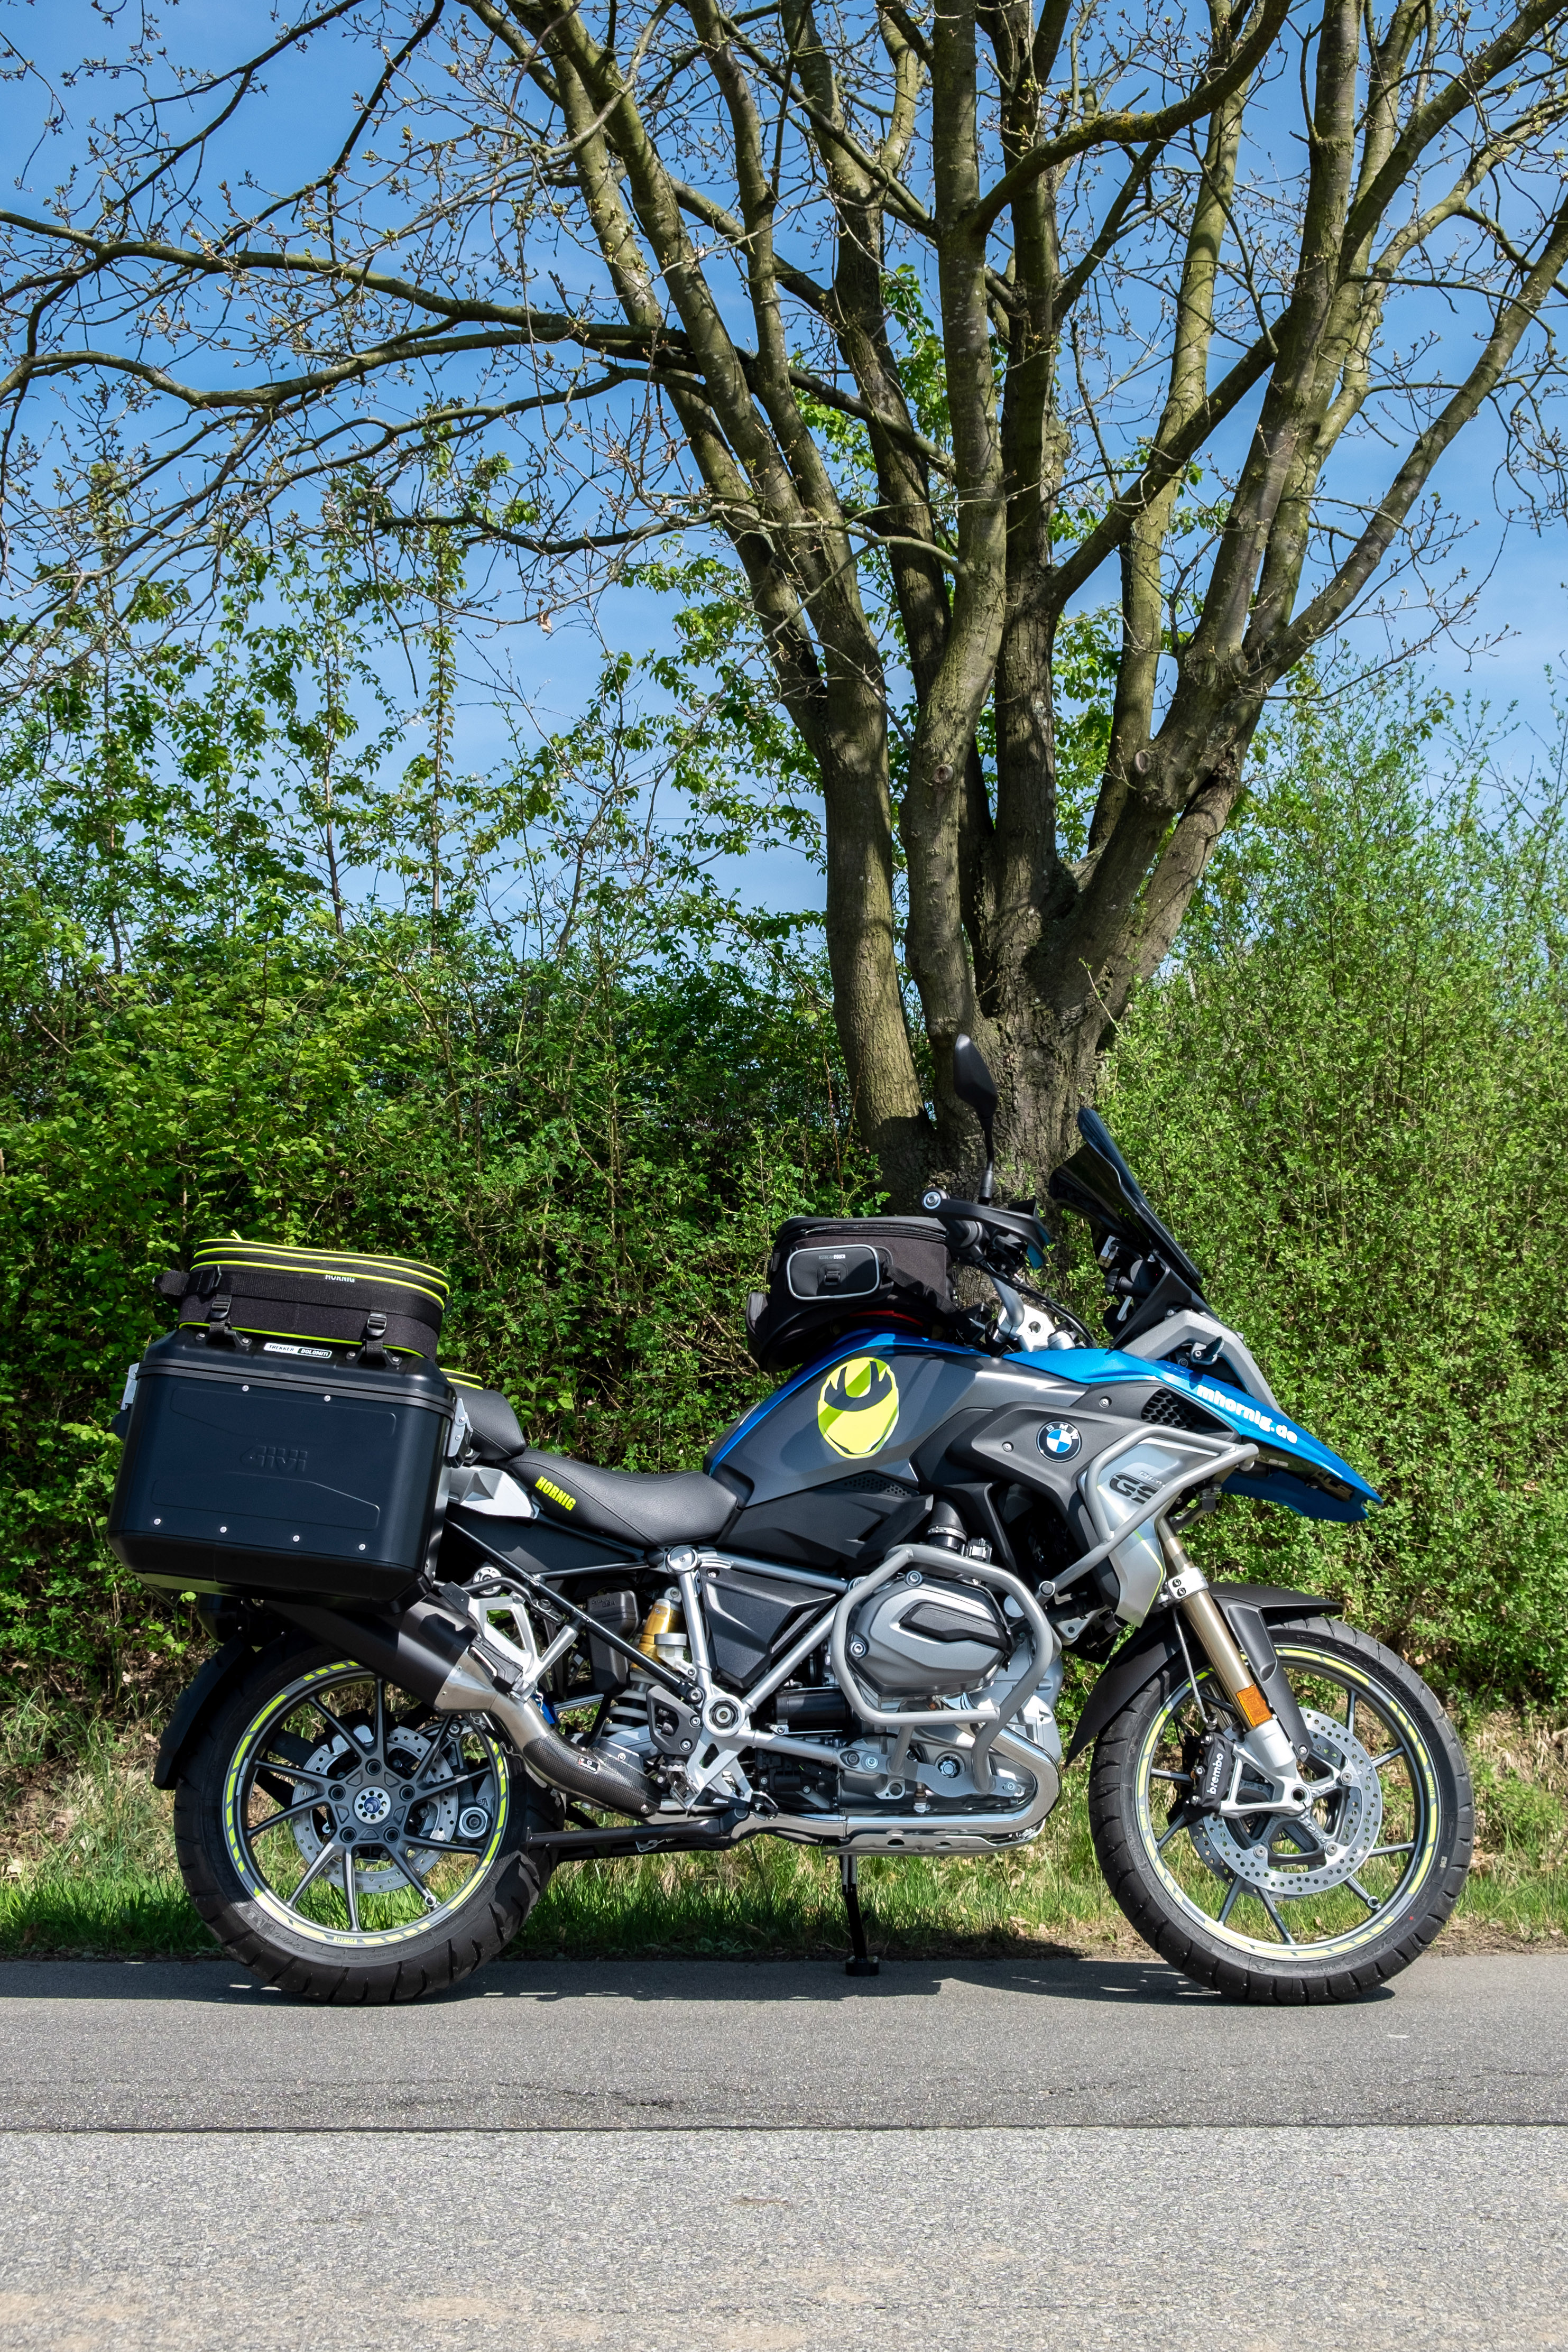 Bmw R1200gs Adventure Triple Black 2017 Review: BMW R1200GS 2018 Conversion By Hornig With More Comfort